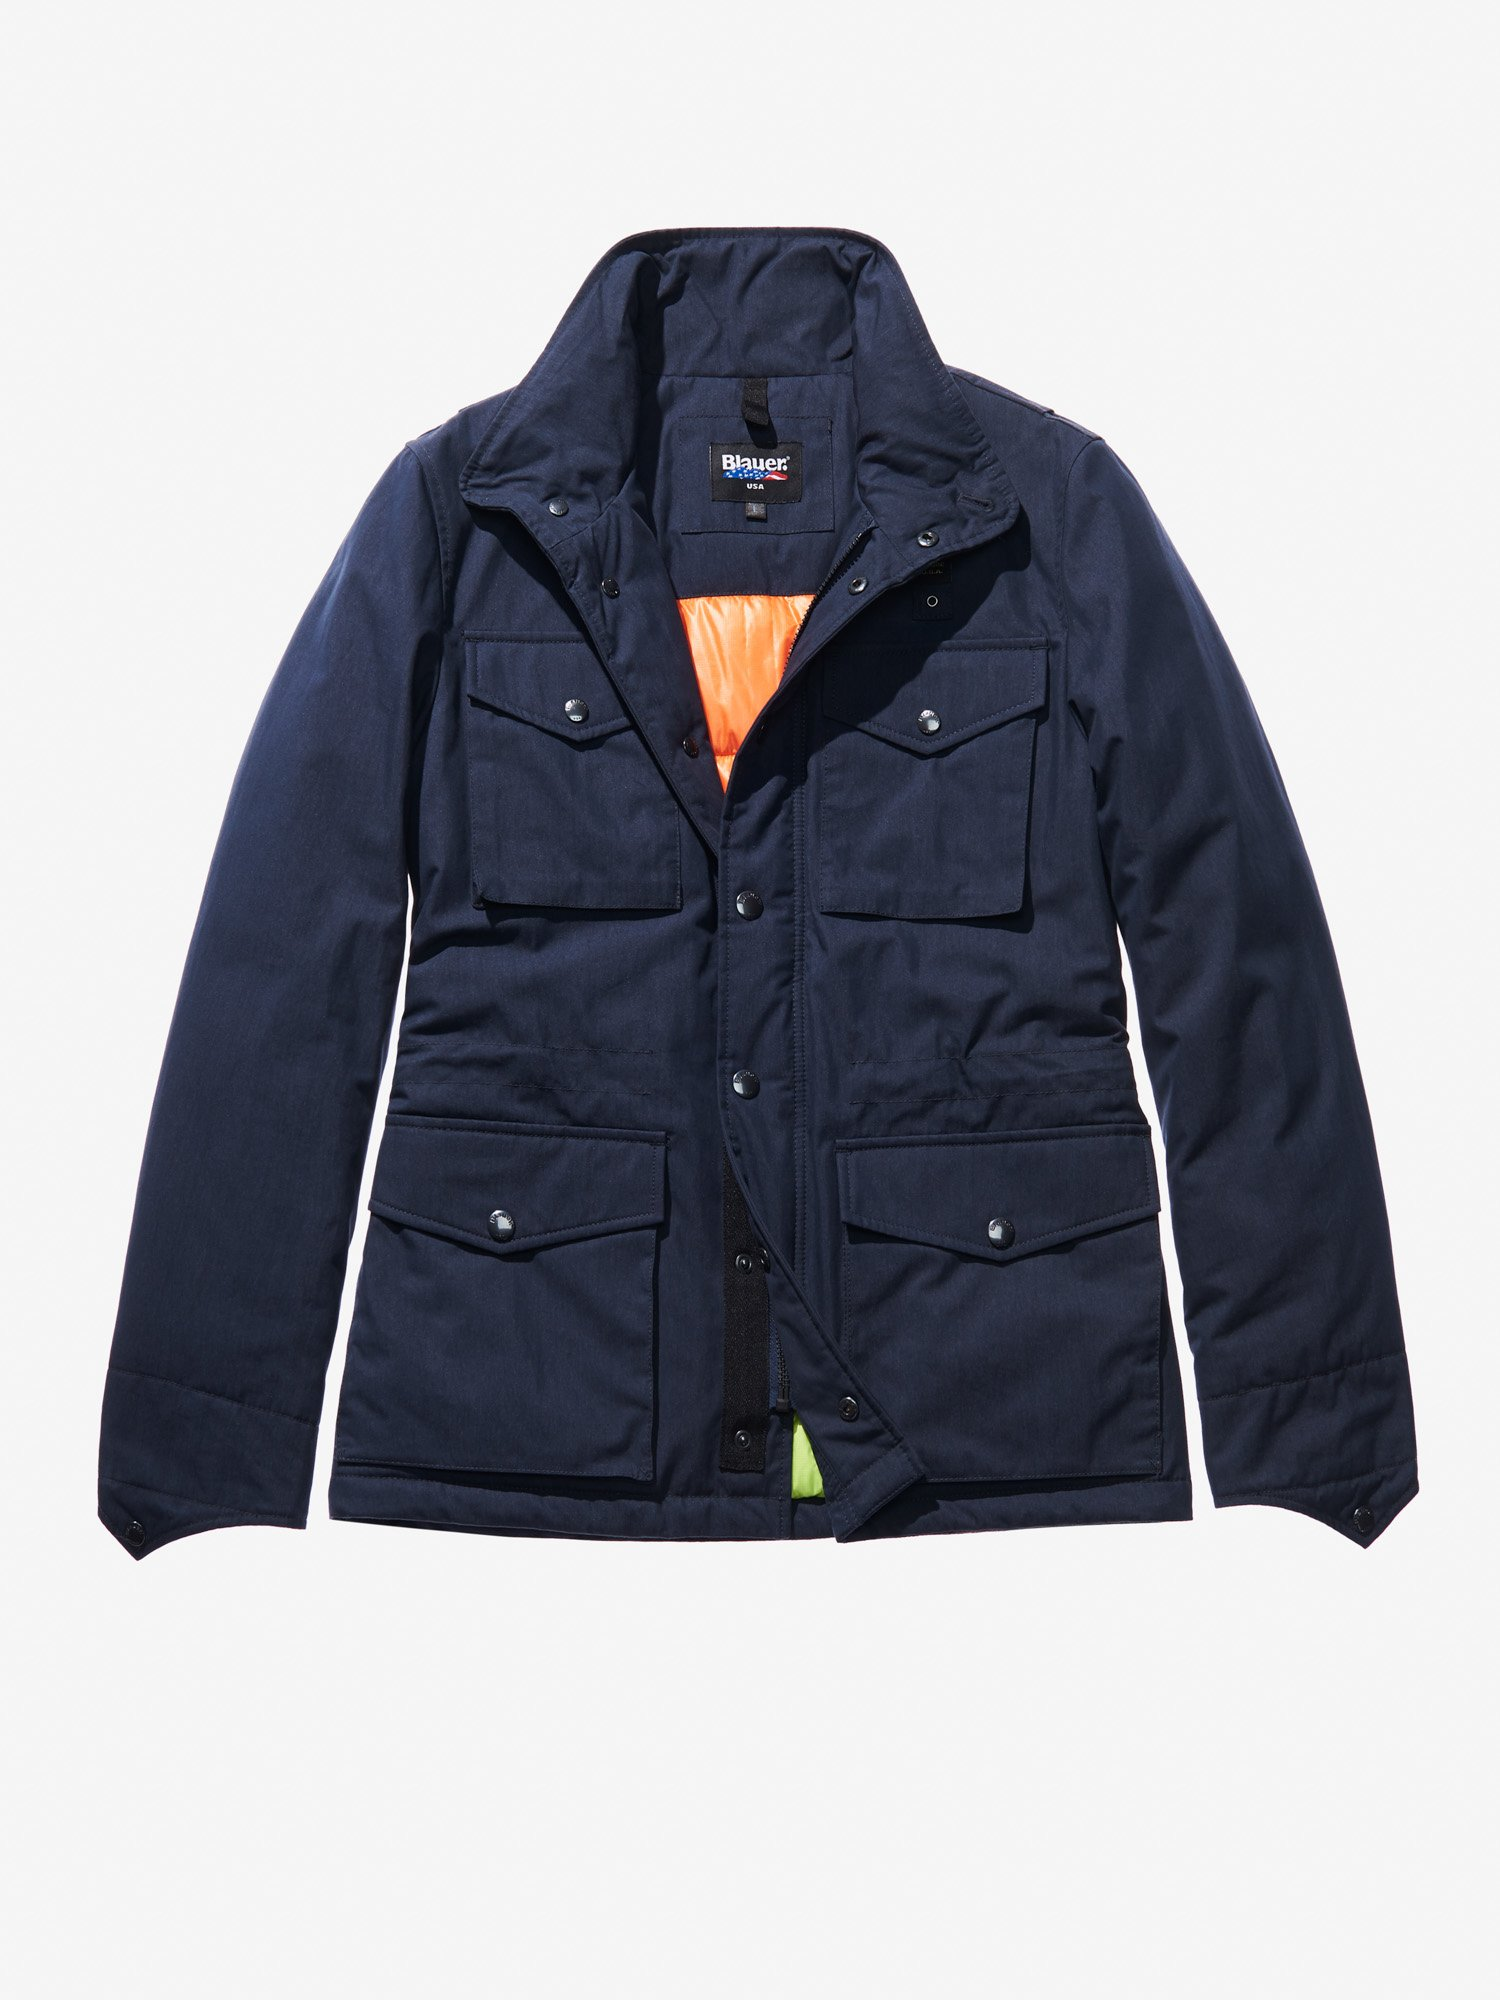 PAOLO COTTON AND NYLON FIELD JACKET - Blauer